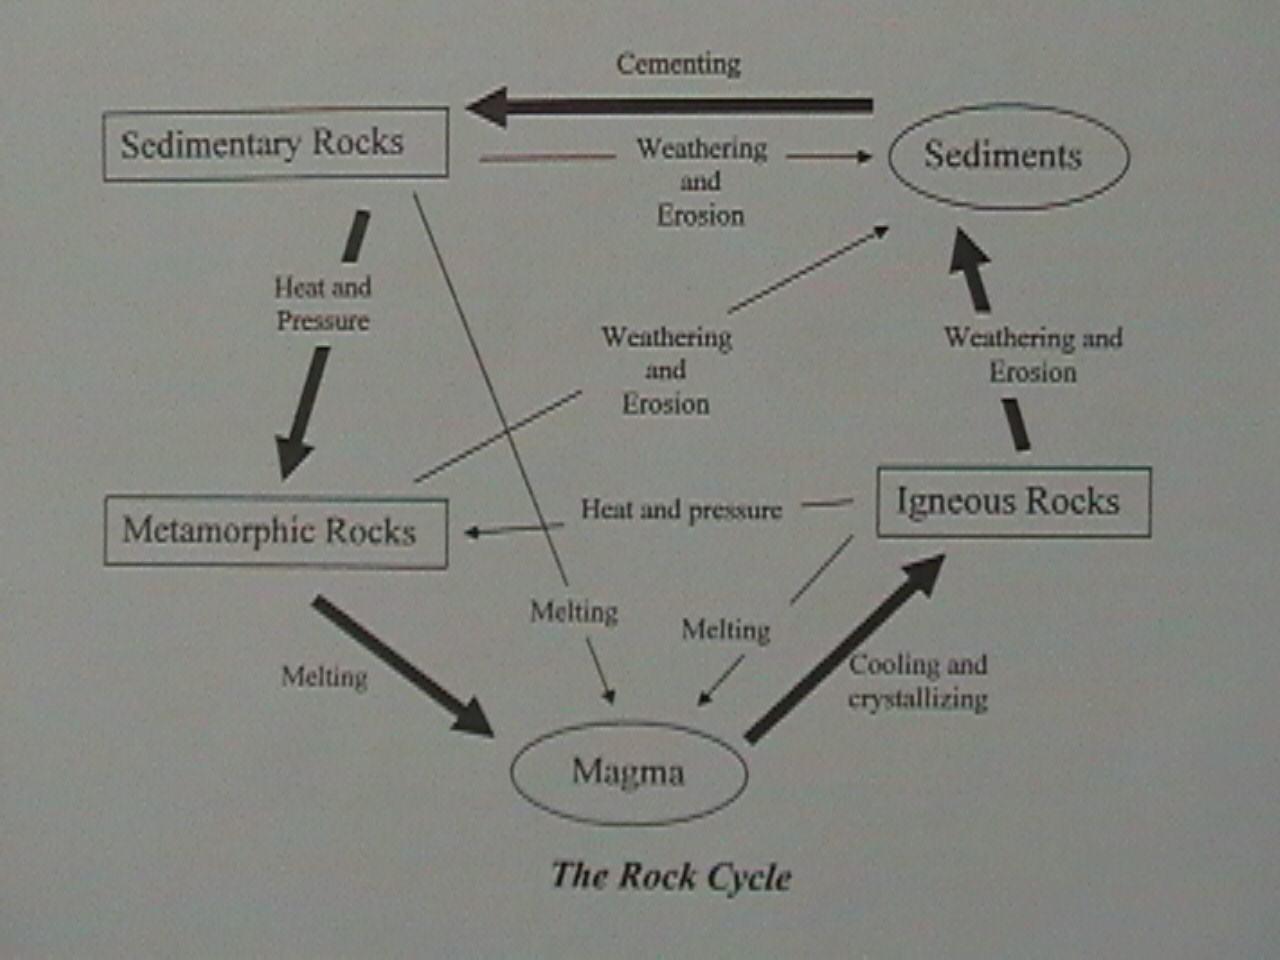 rockcyclediagram.jpg